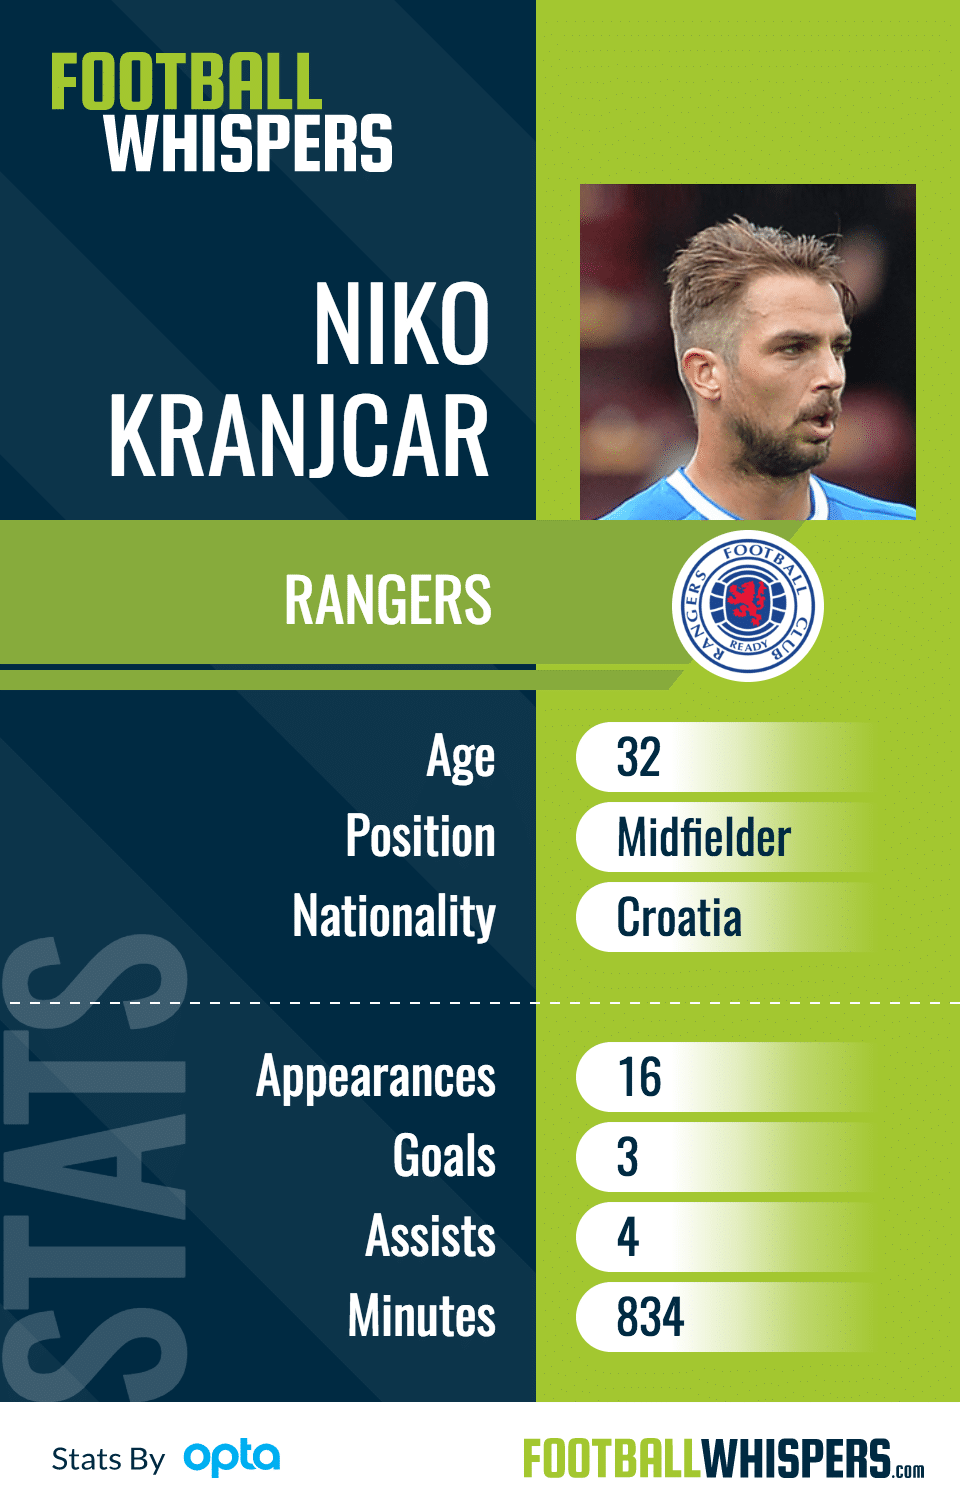 Niko Kranjcar player card